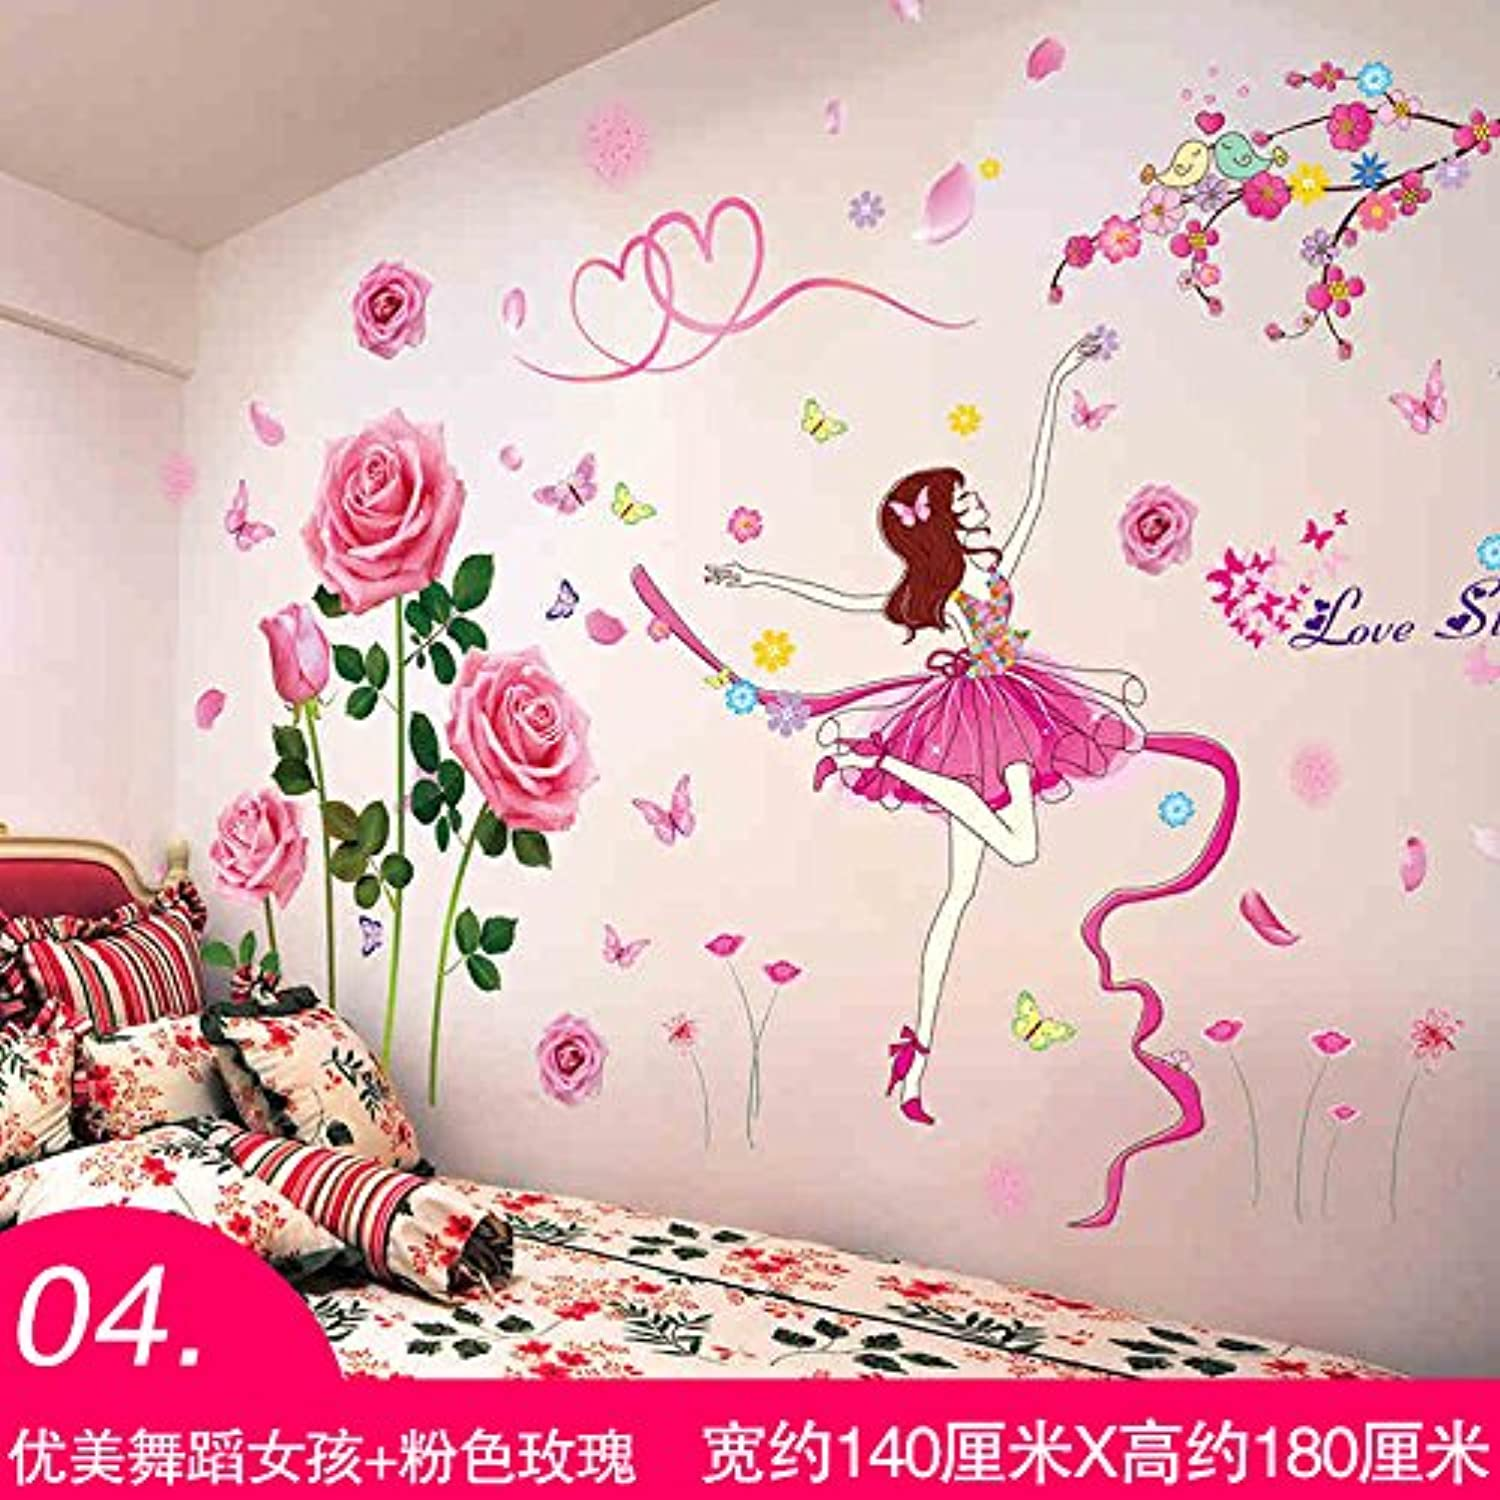 Znzbzt Bedroom Wall Art Room Wall Decoration 3D Wall Paper self Adhesive Paper, and Girls + pink